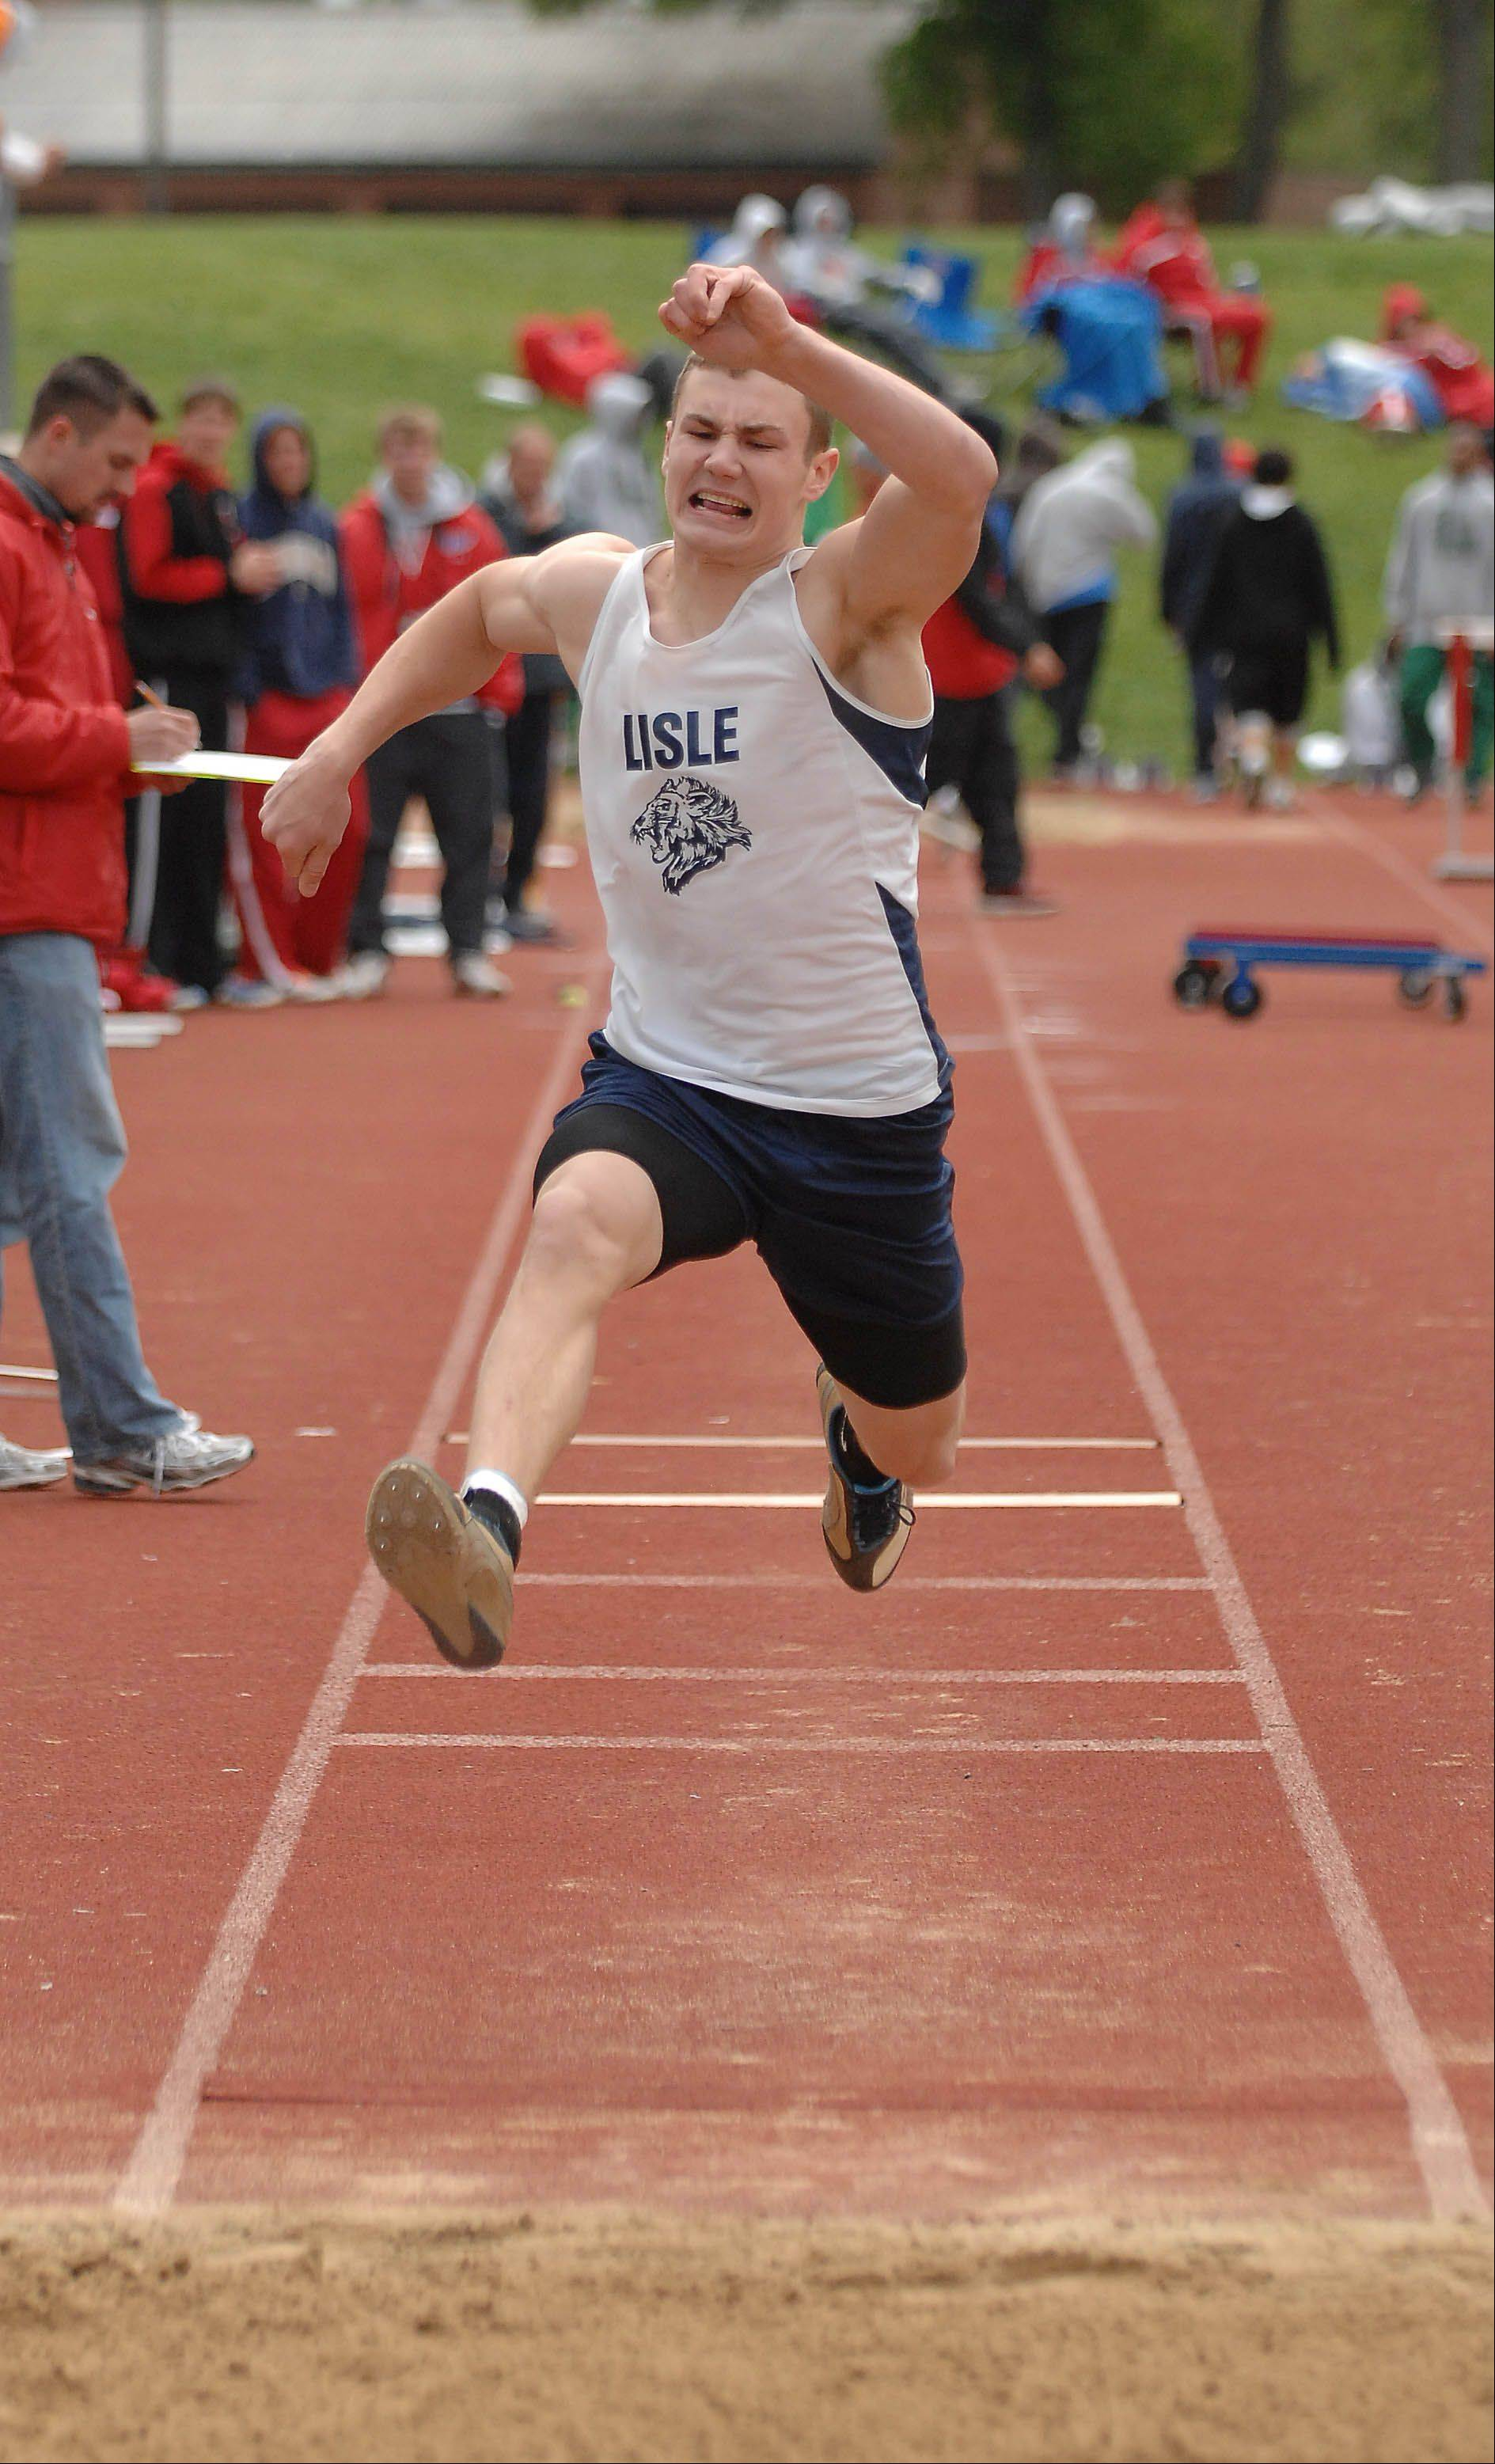 PAUL MICHNA/PMICHNA@DAILYHERALD.COM � Anthony Ventrella of lisle in the triple jump during the Carlin Nalley Track & Field Invitational Saturday at Benedictine University in Lisle. �